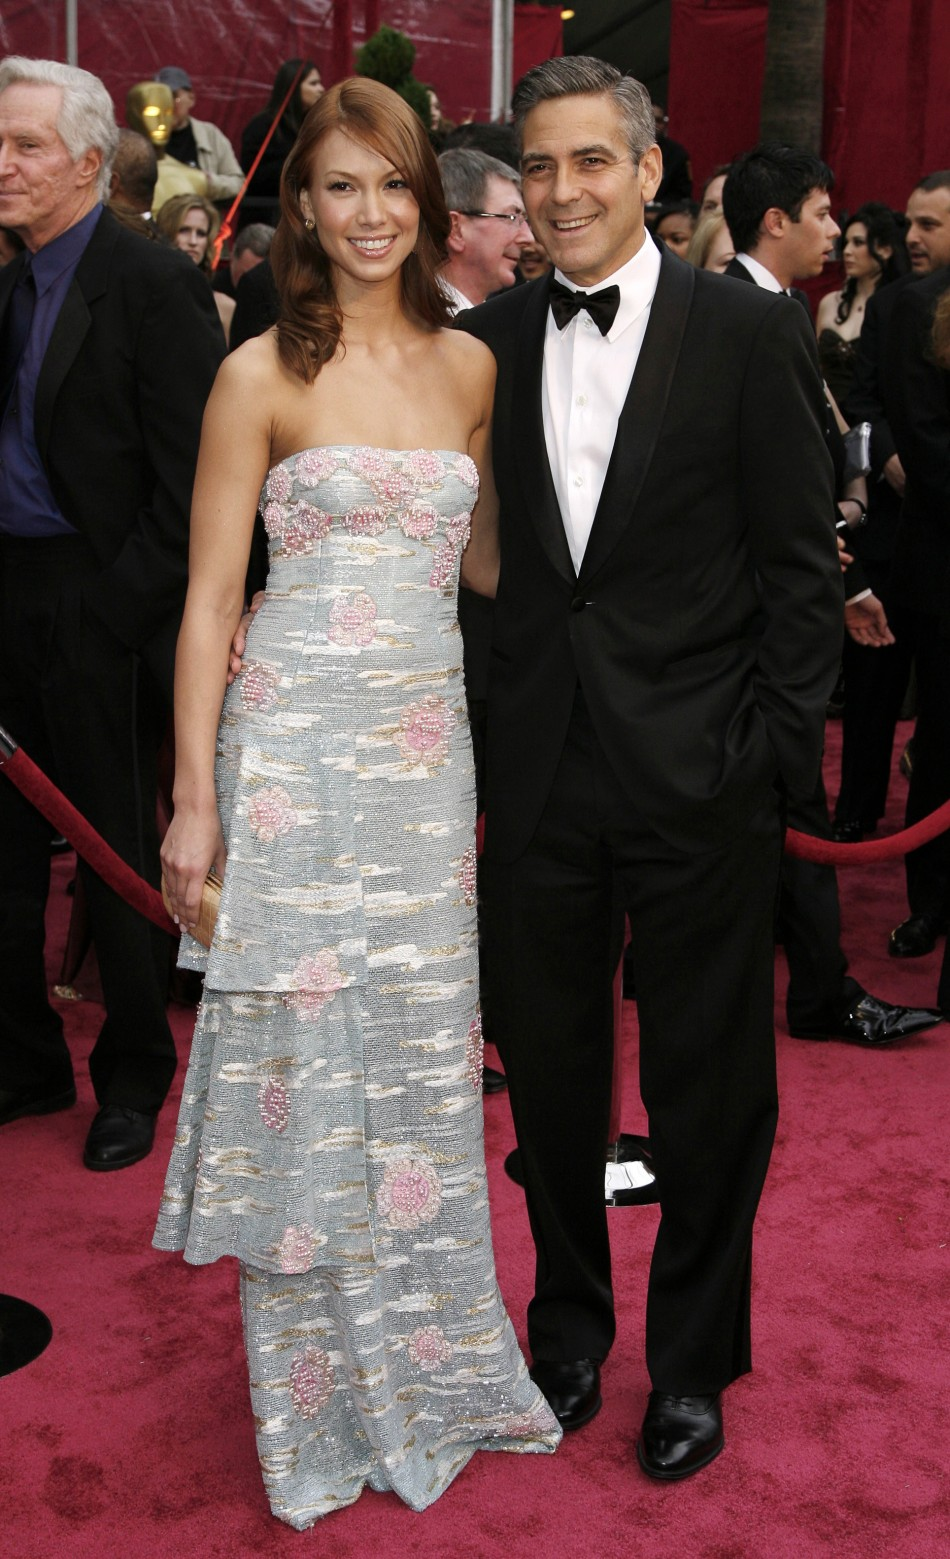 Actor George Clooney and his girlfriend Sarah Larson